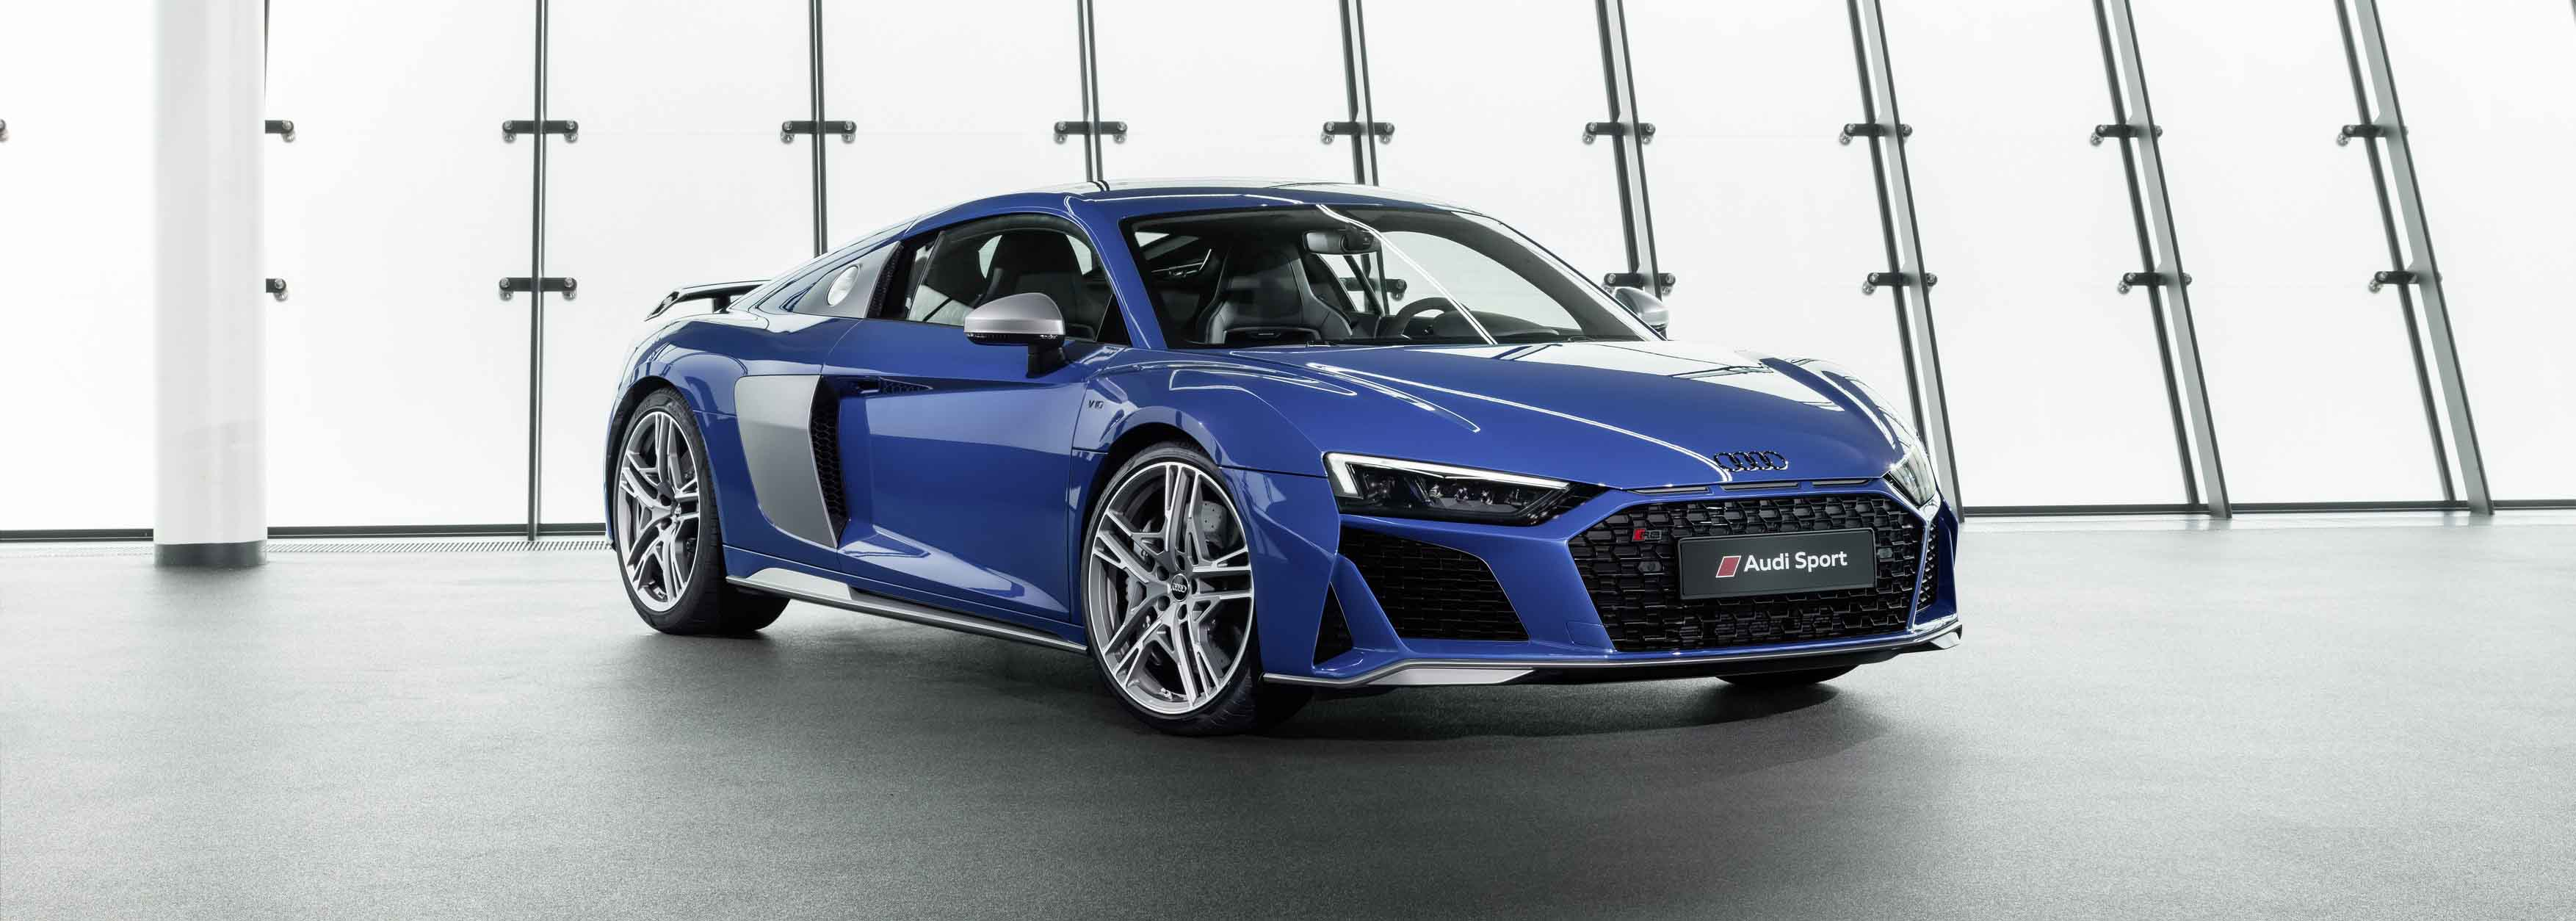 Audi R8 receives design and technology updates for 2021